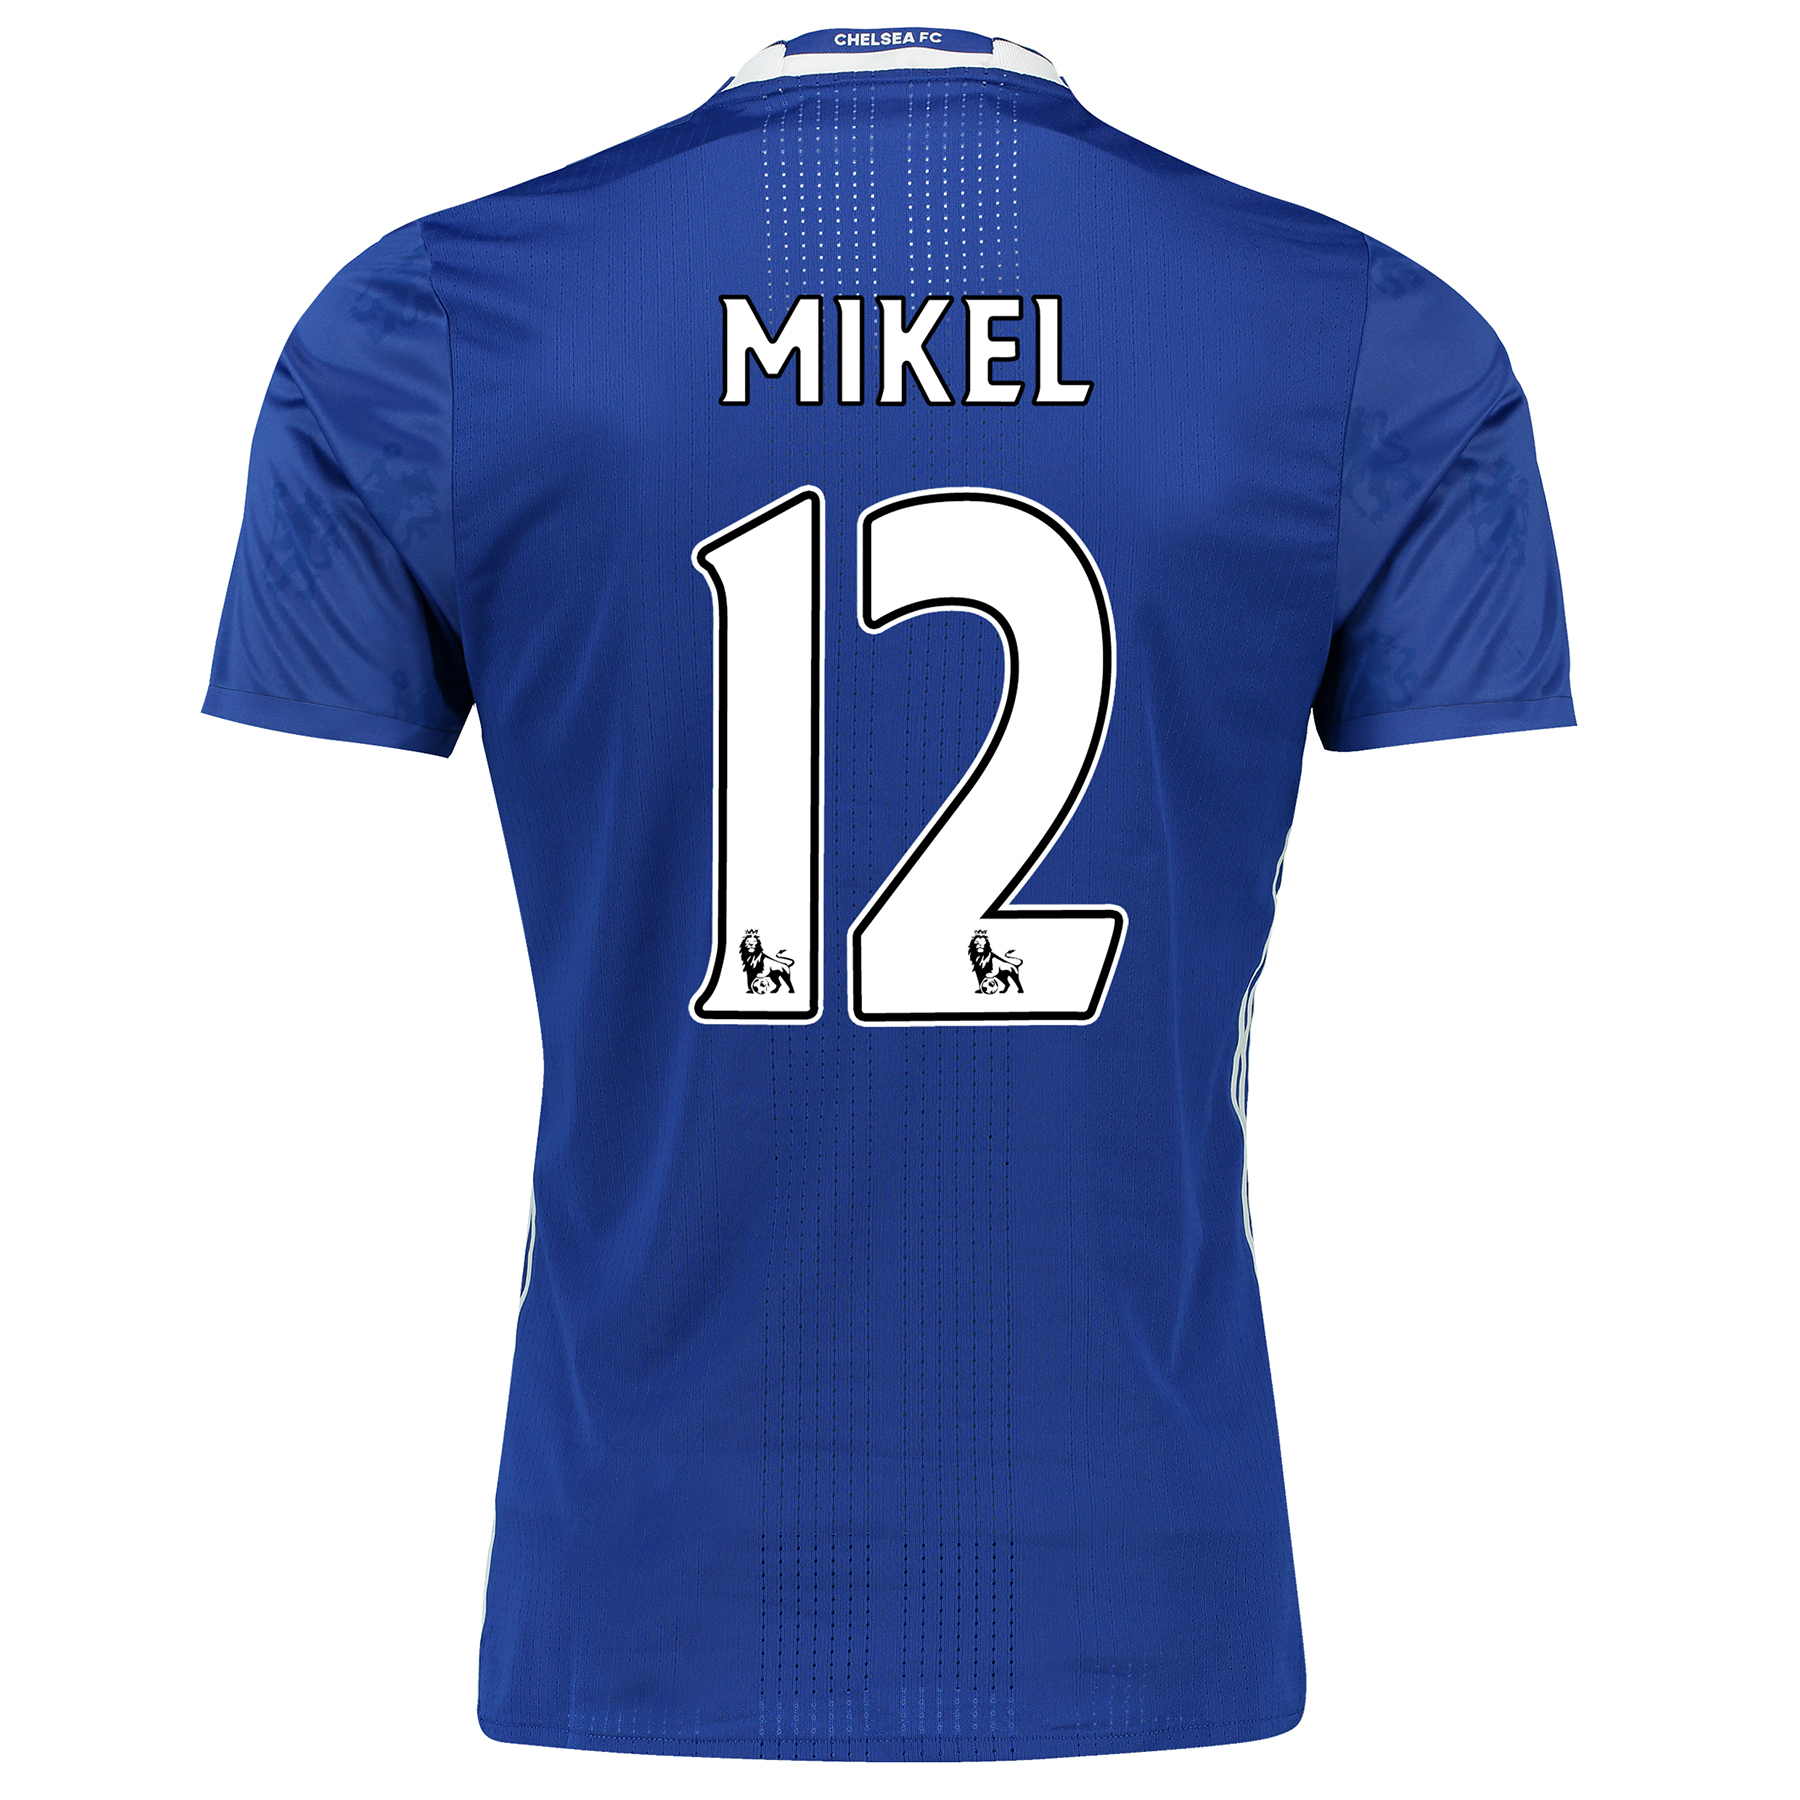 Shop Mikel Printed Shirts